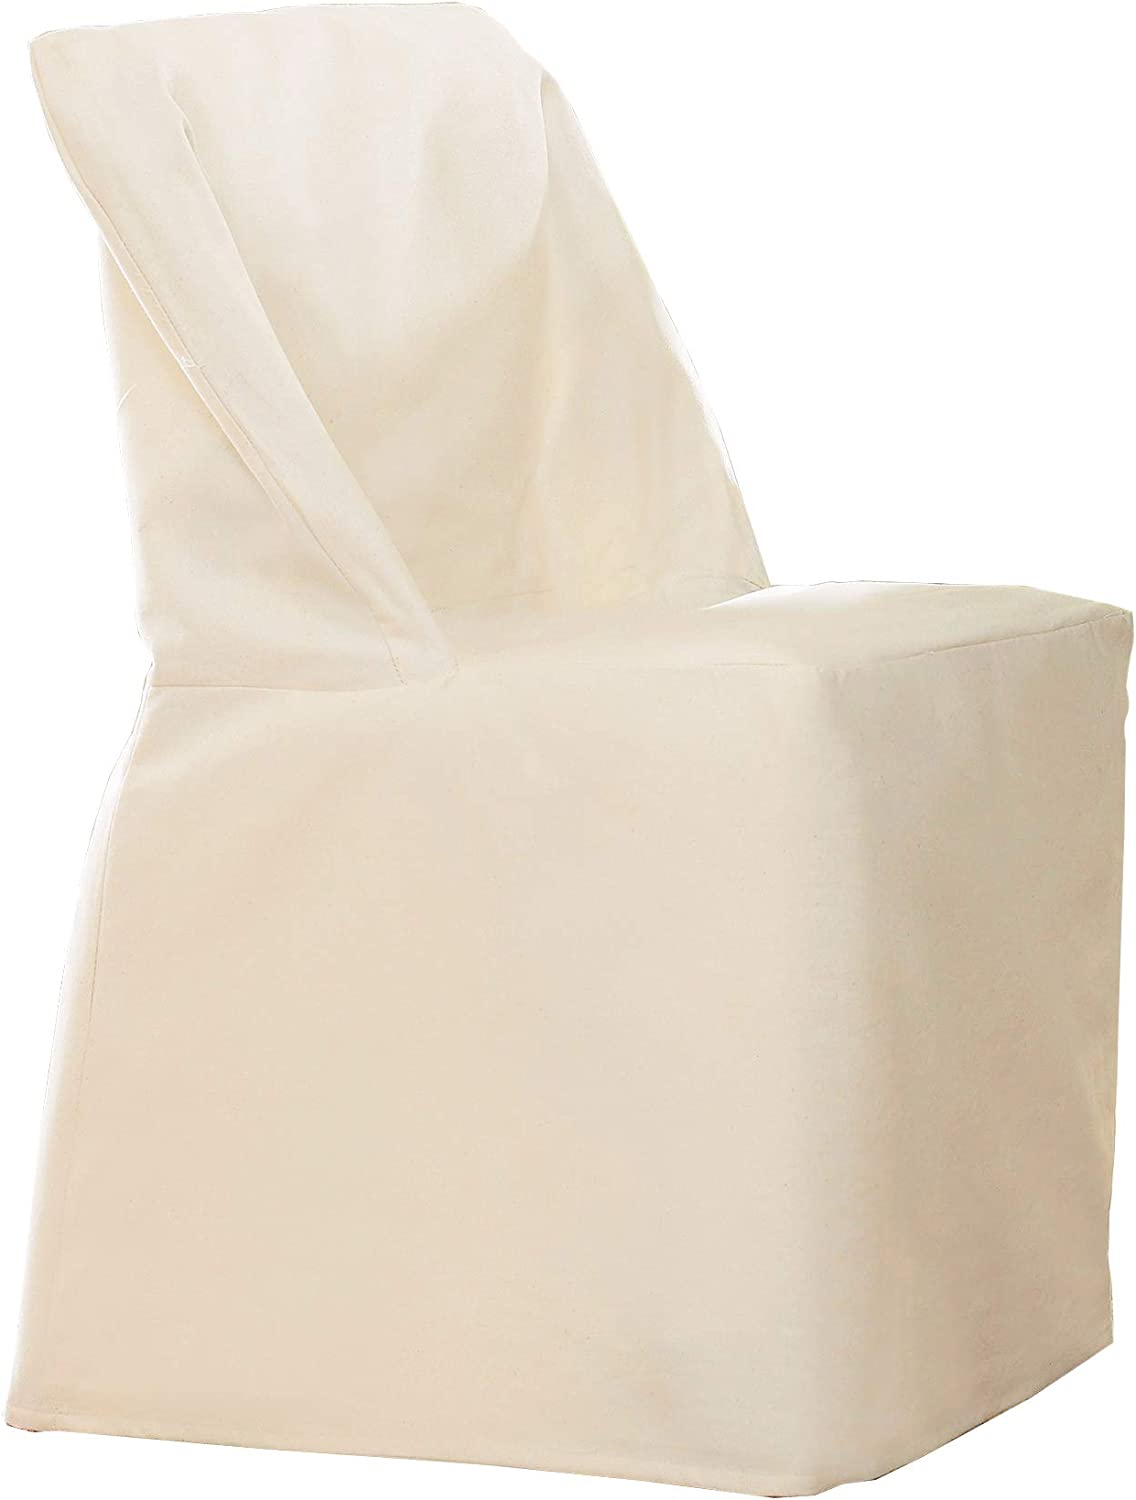 Natural NEW Sure Fit Cotton Duck Dining Room Chair Slipcover